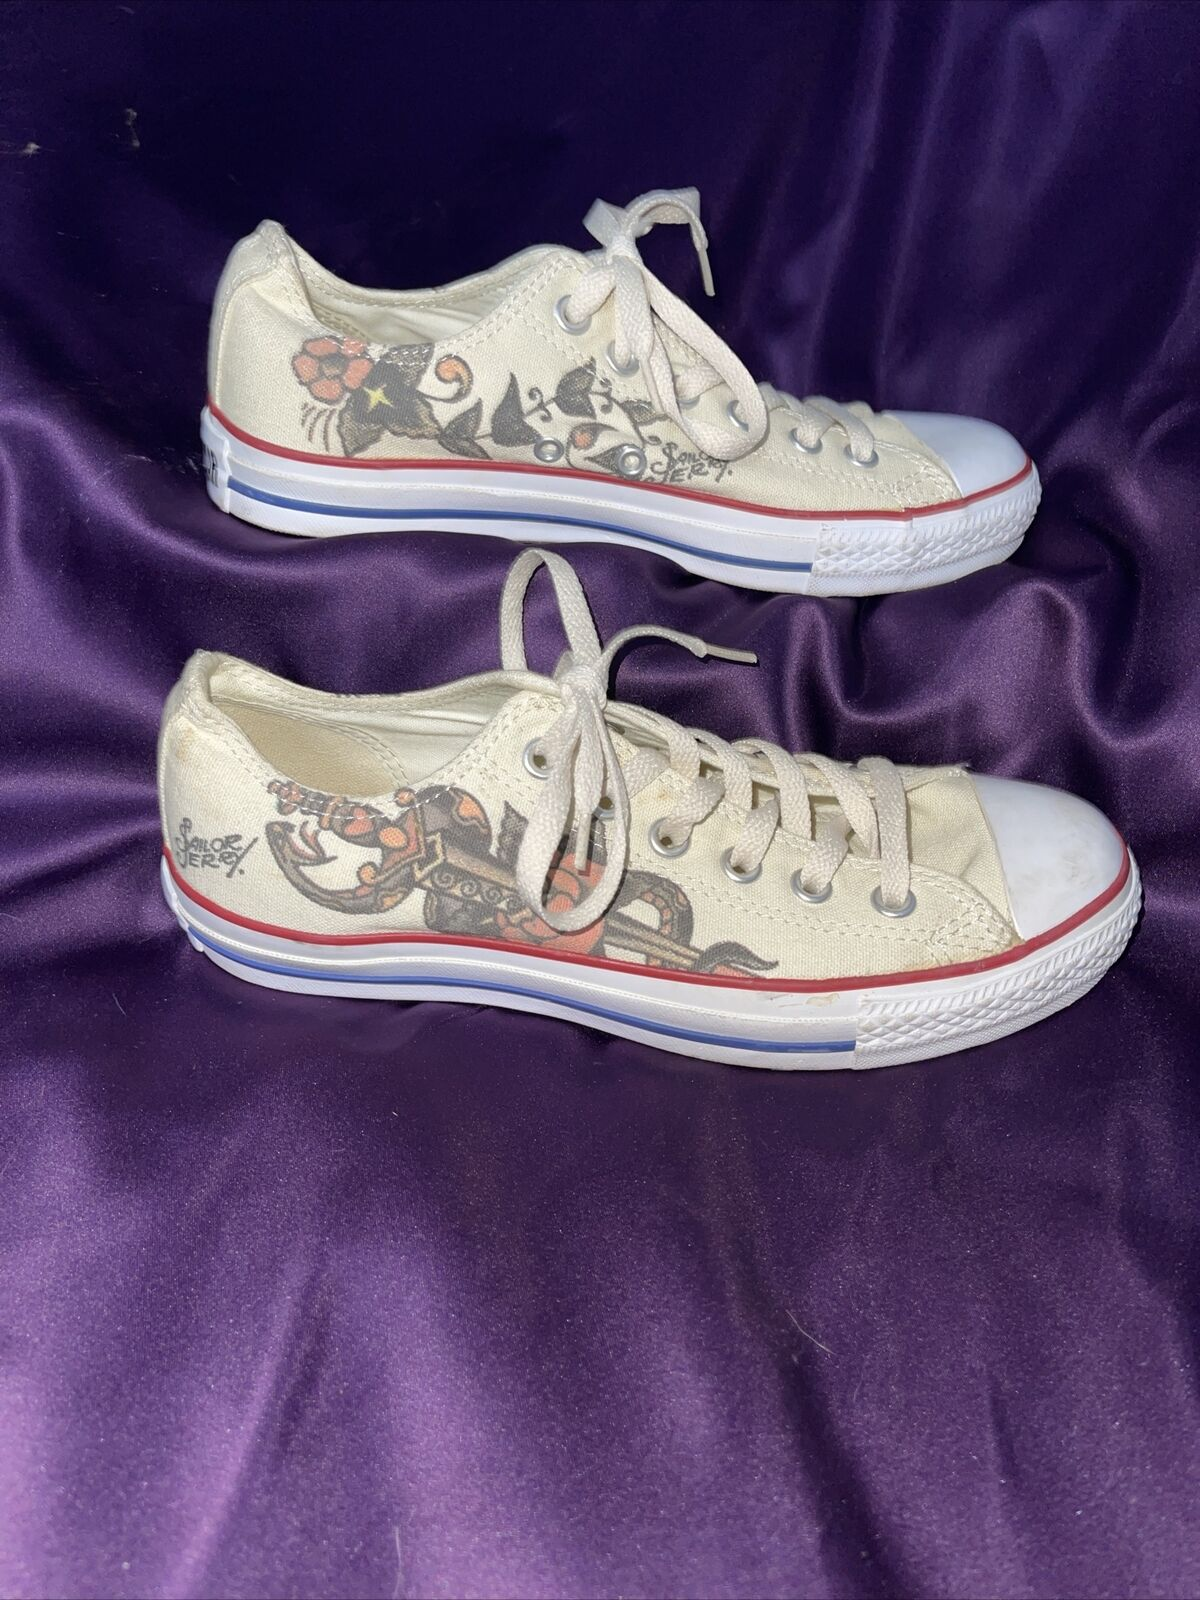 RARE🔥 Converse Chuck Taylor ALL Star Sailor Jerry Death or Glory OX Low Sz 6